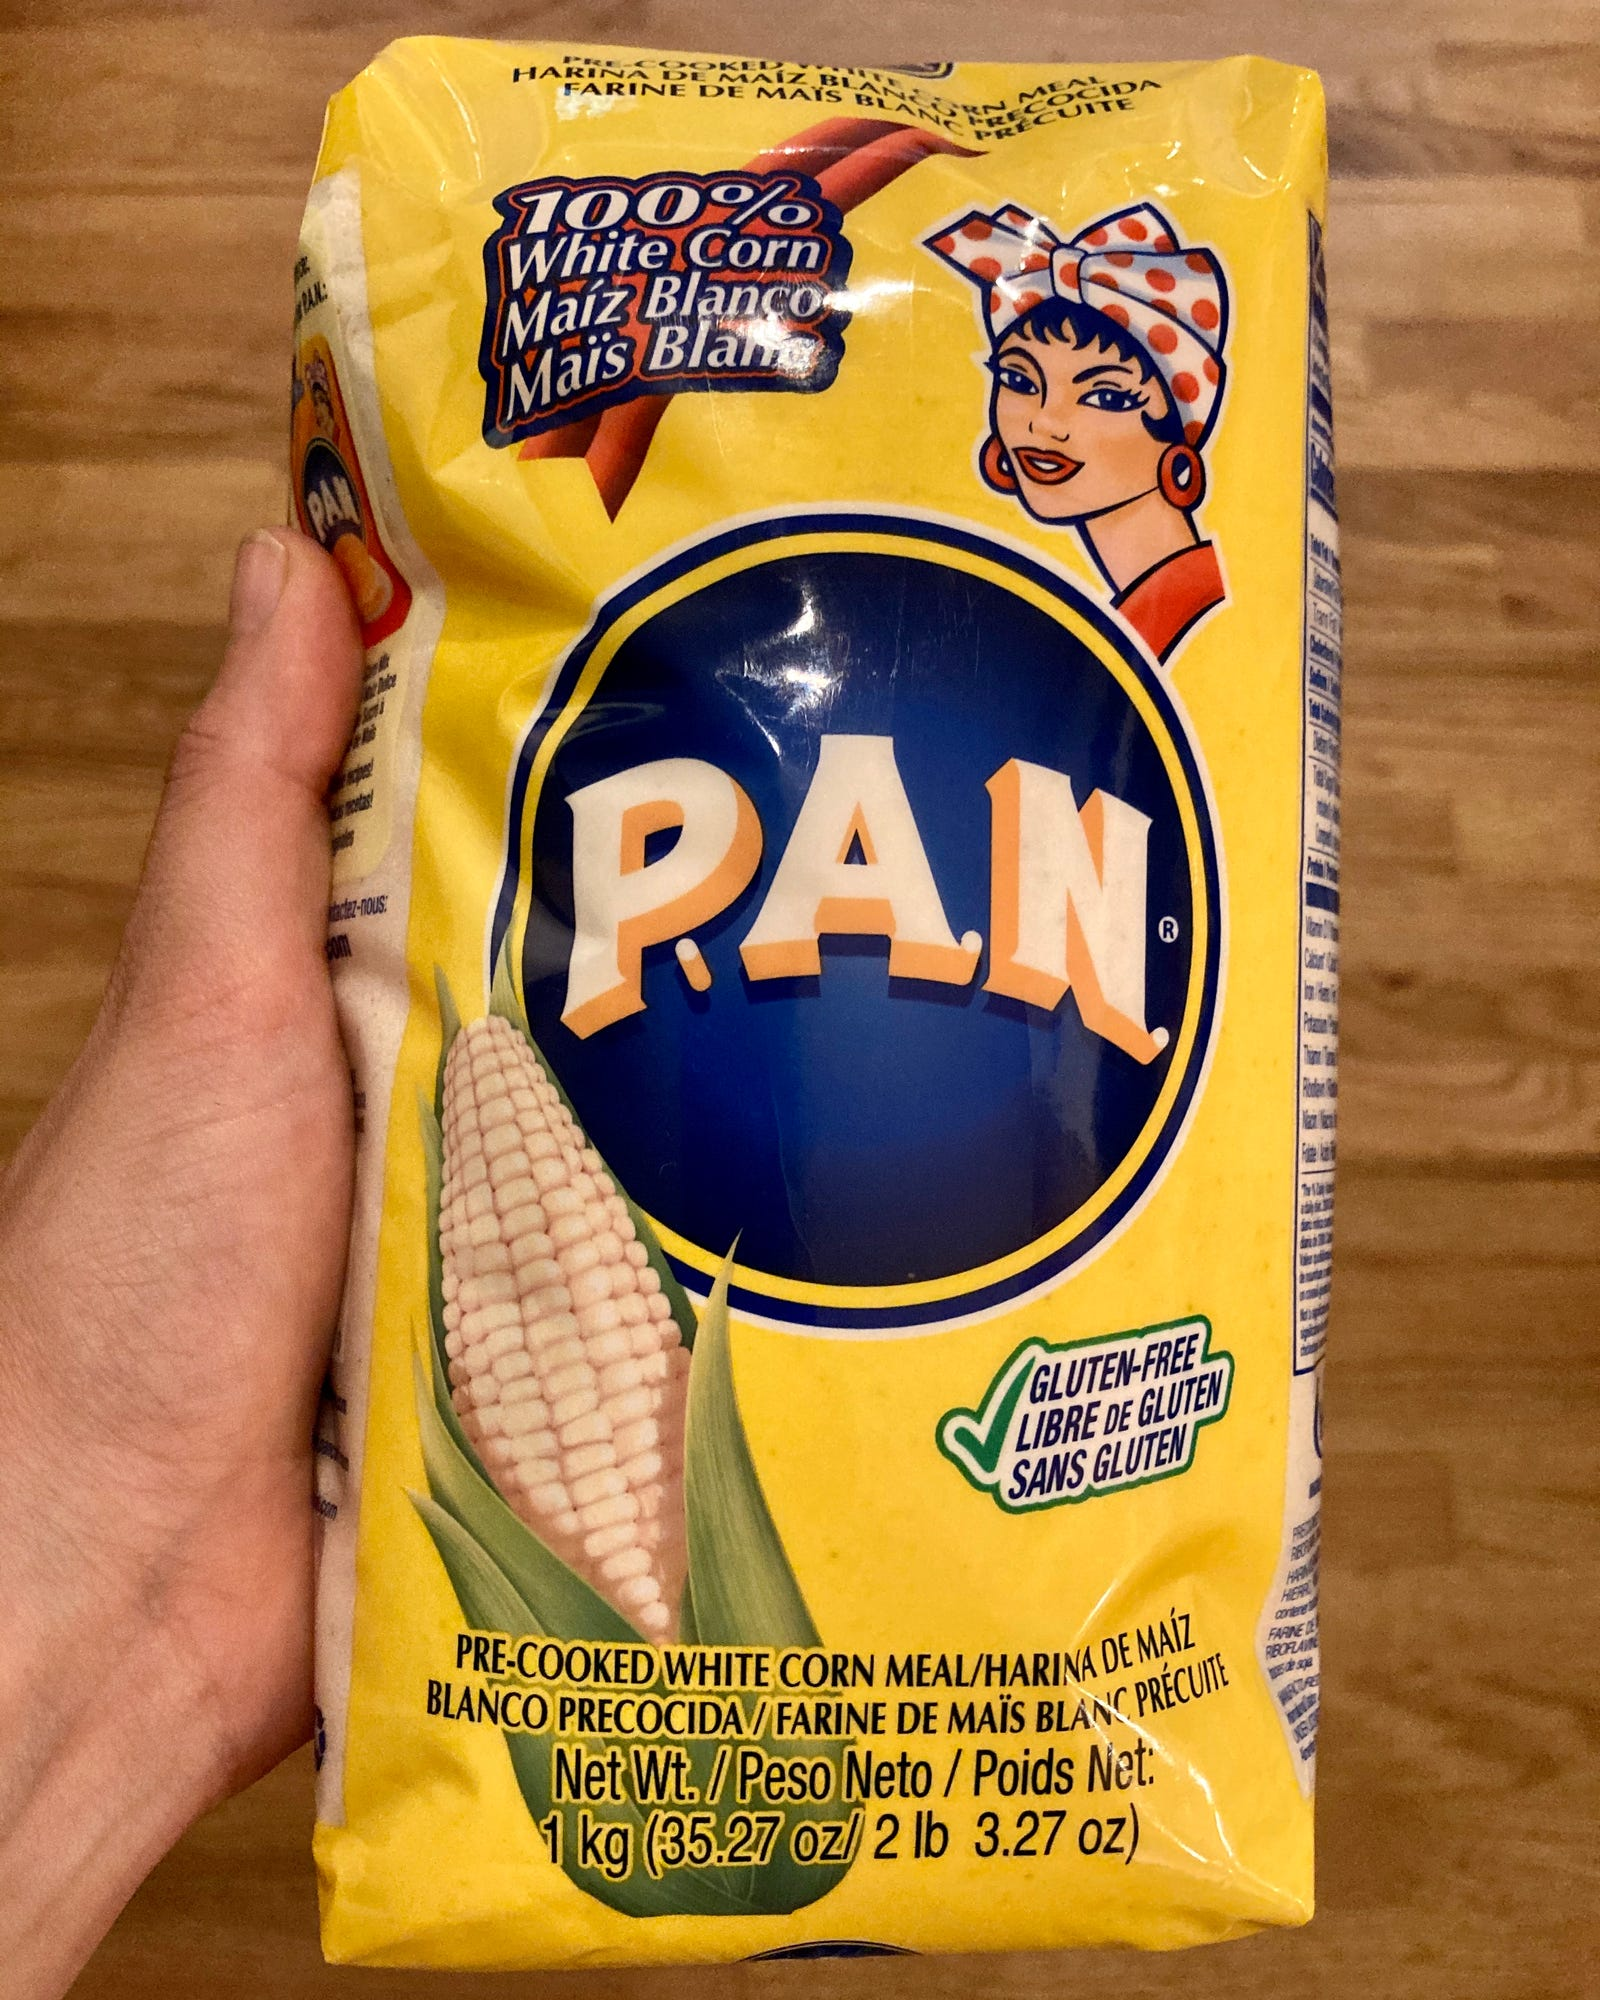 P.A.N. is the brand I see at grocery stores in the states most often. It has a recipe for making arepas on the back.